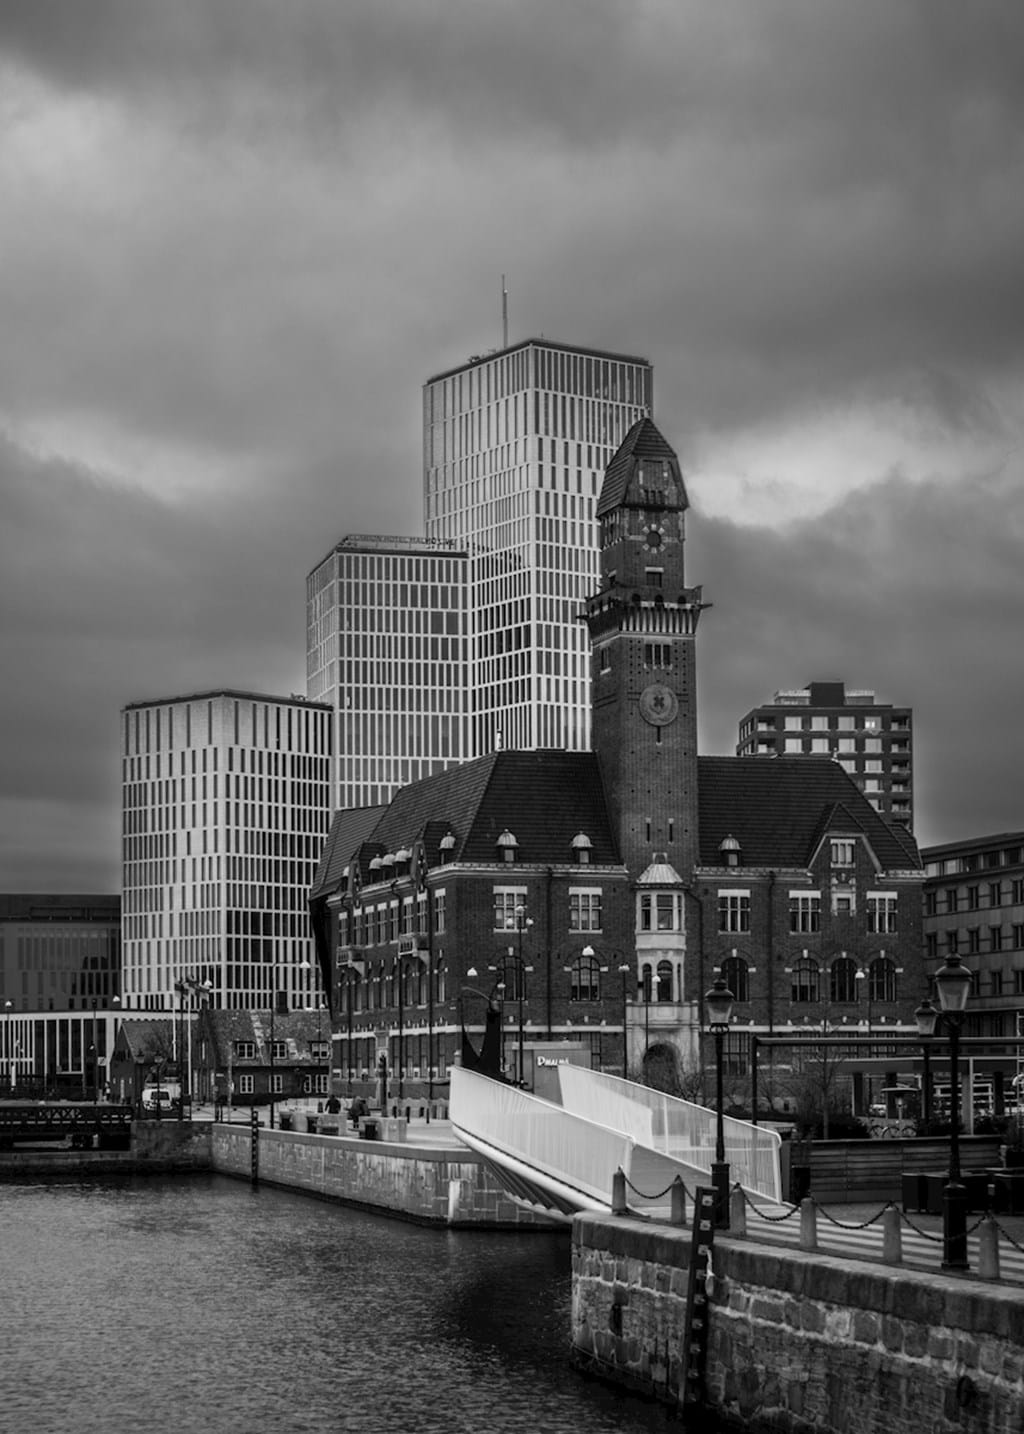 Poster: Old vs New - This is a wonderful picture in black and white of old and new buildings in ...